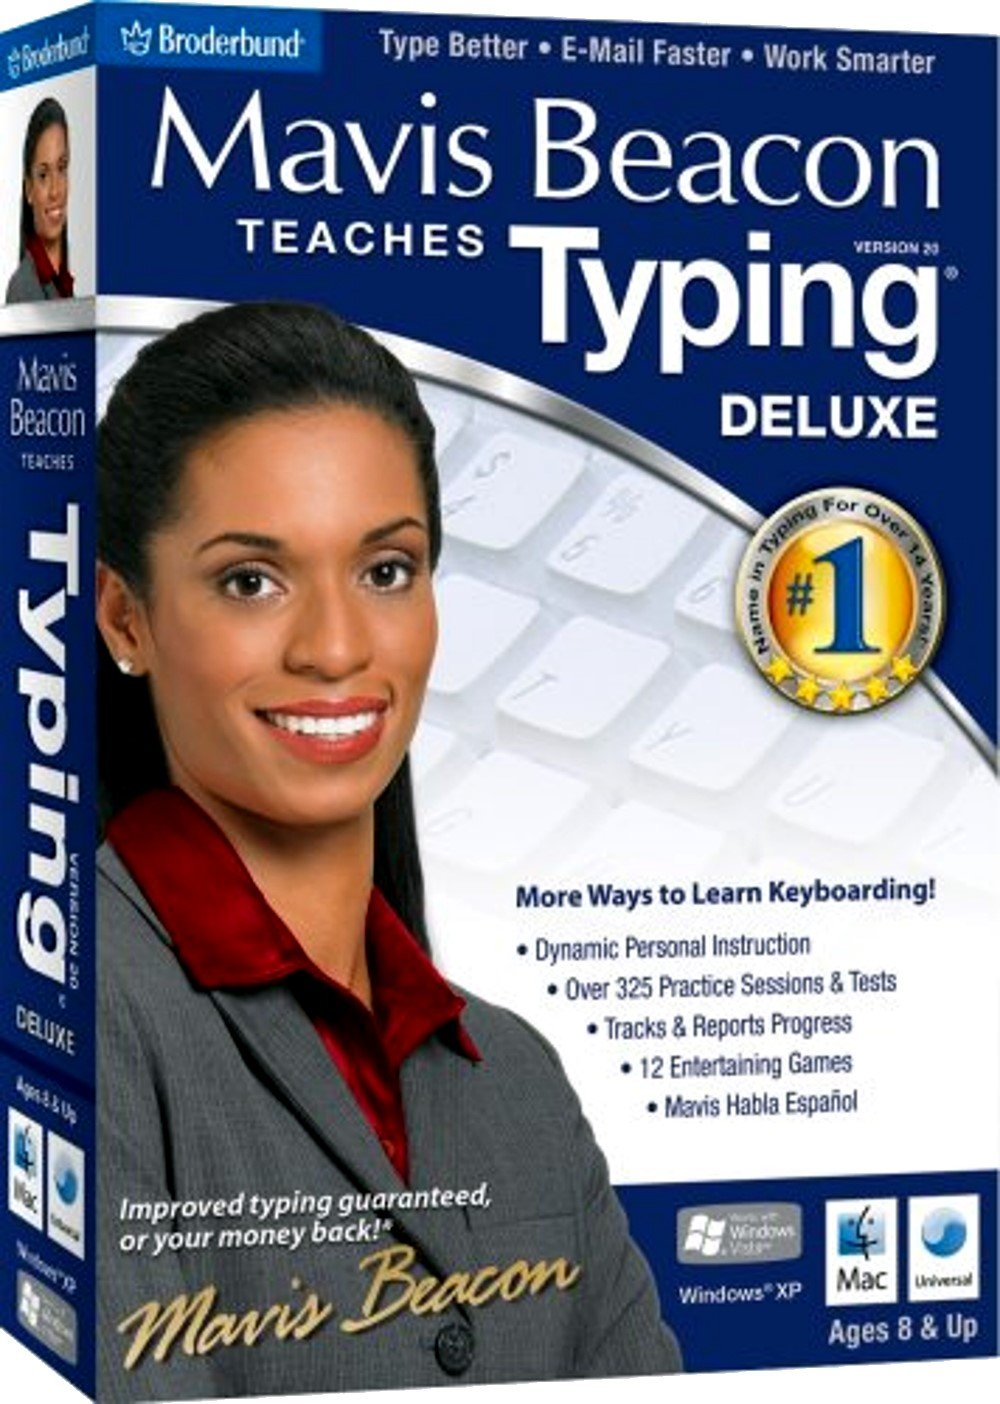 Mavis Beacon Teaches Typing Deluxe 20 - Old Version